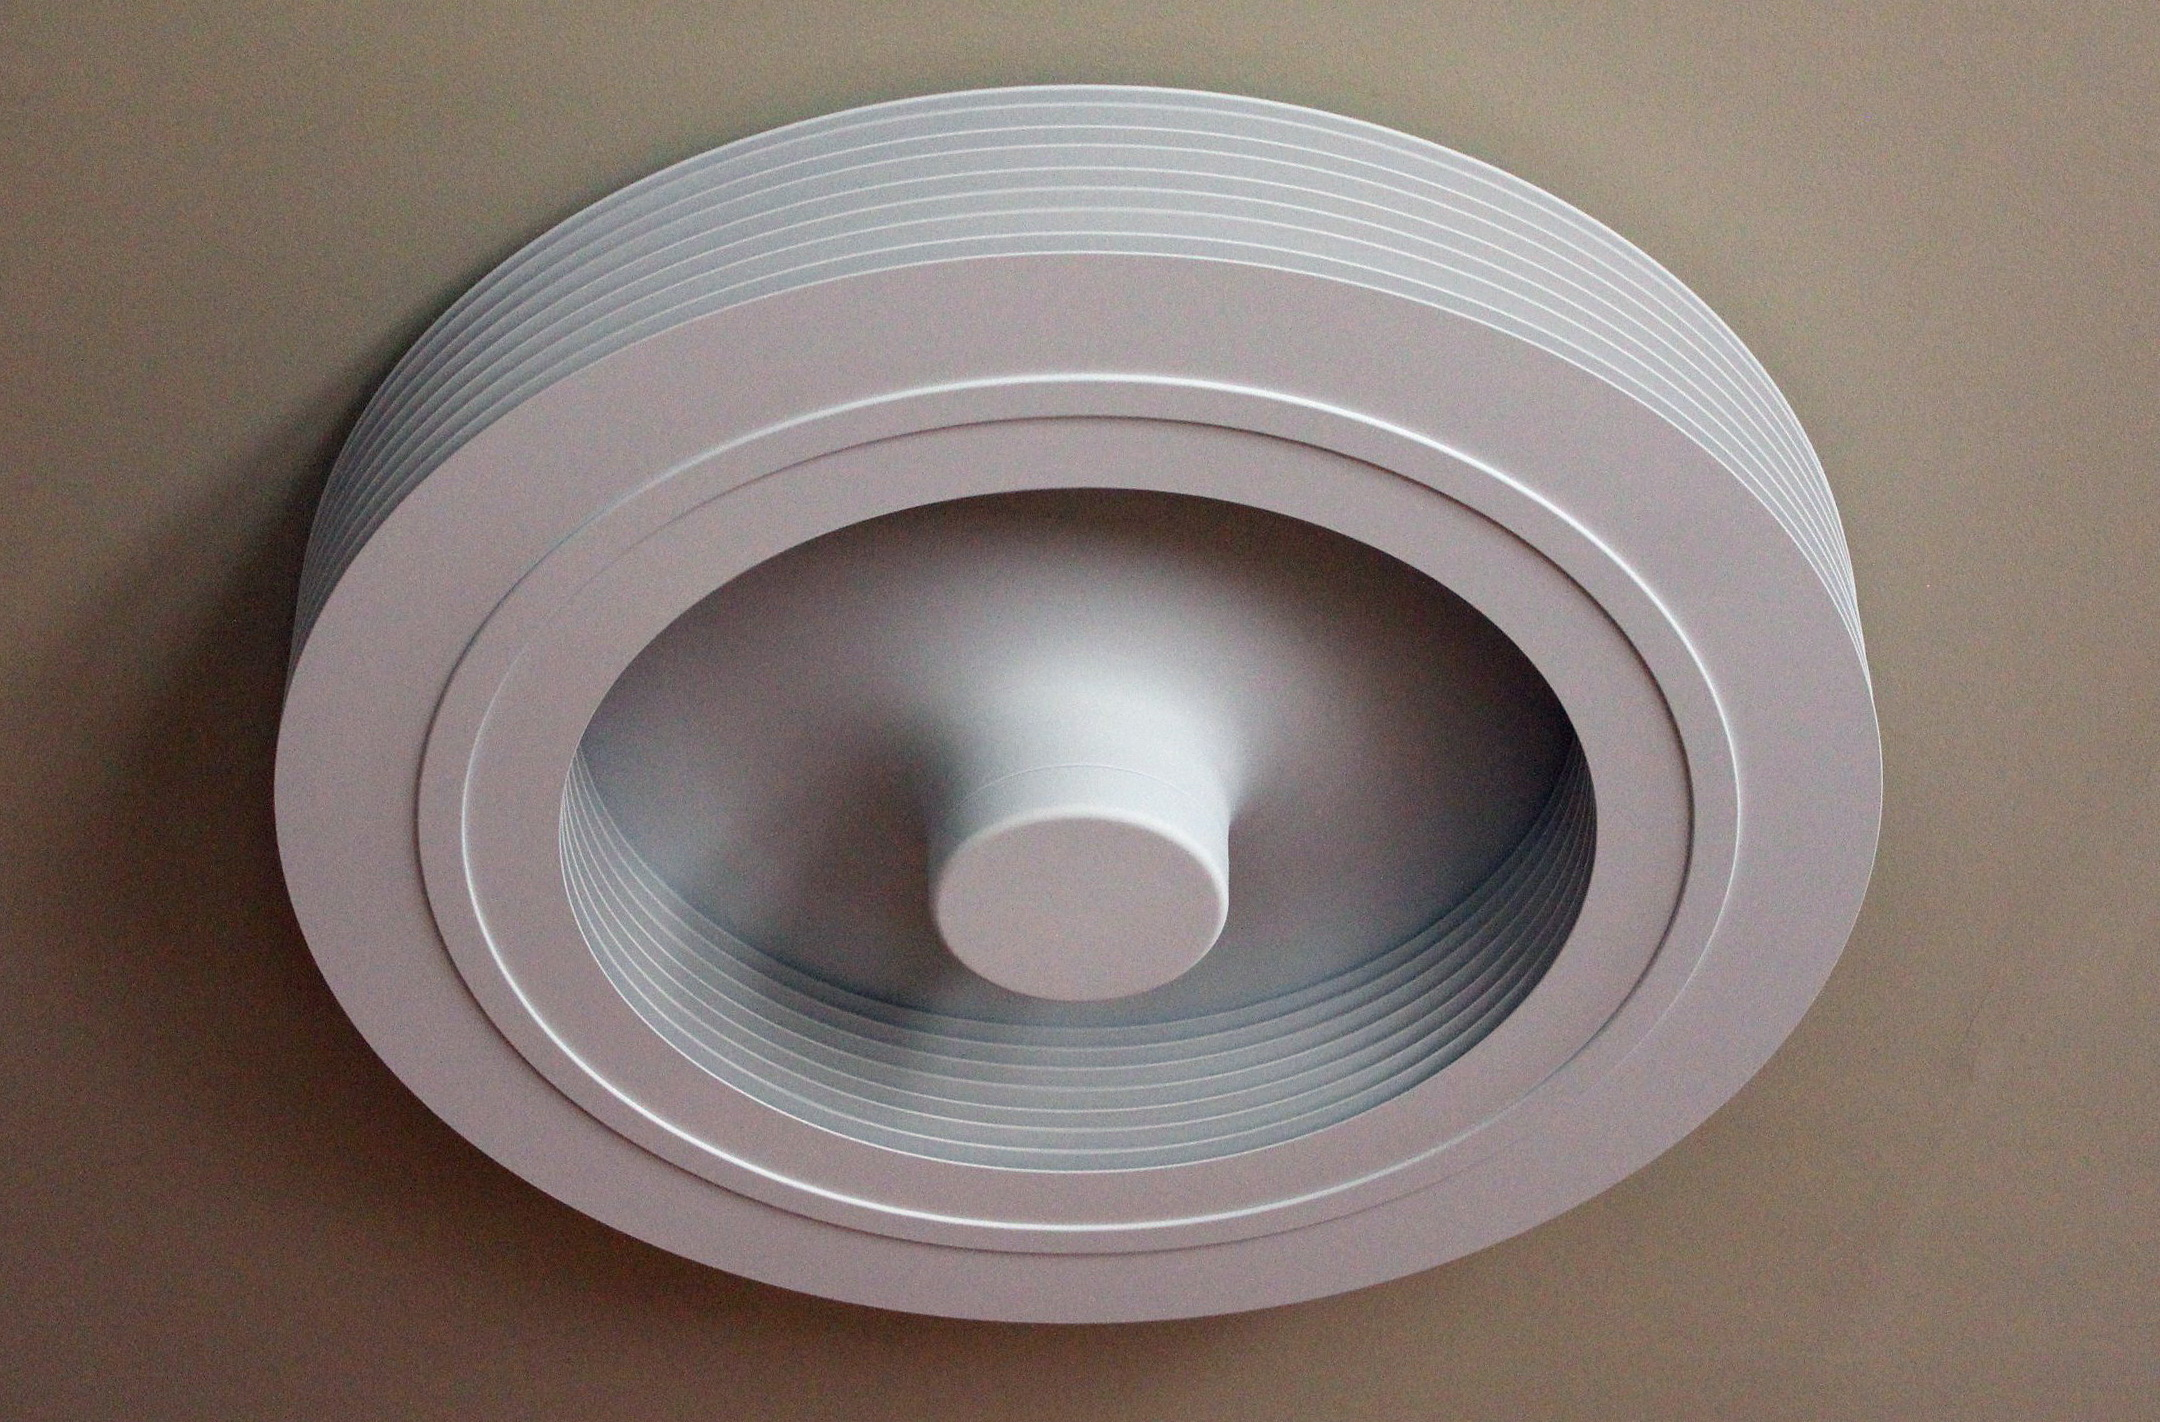 Where to get ceiling bladeless fan